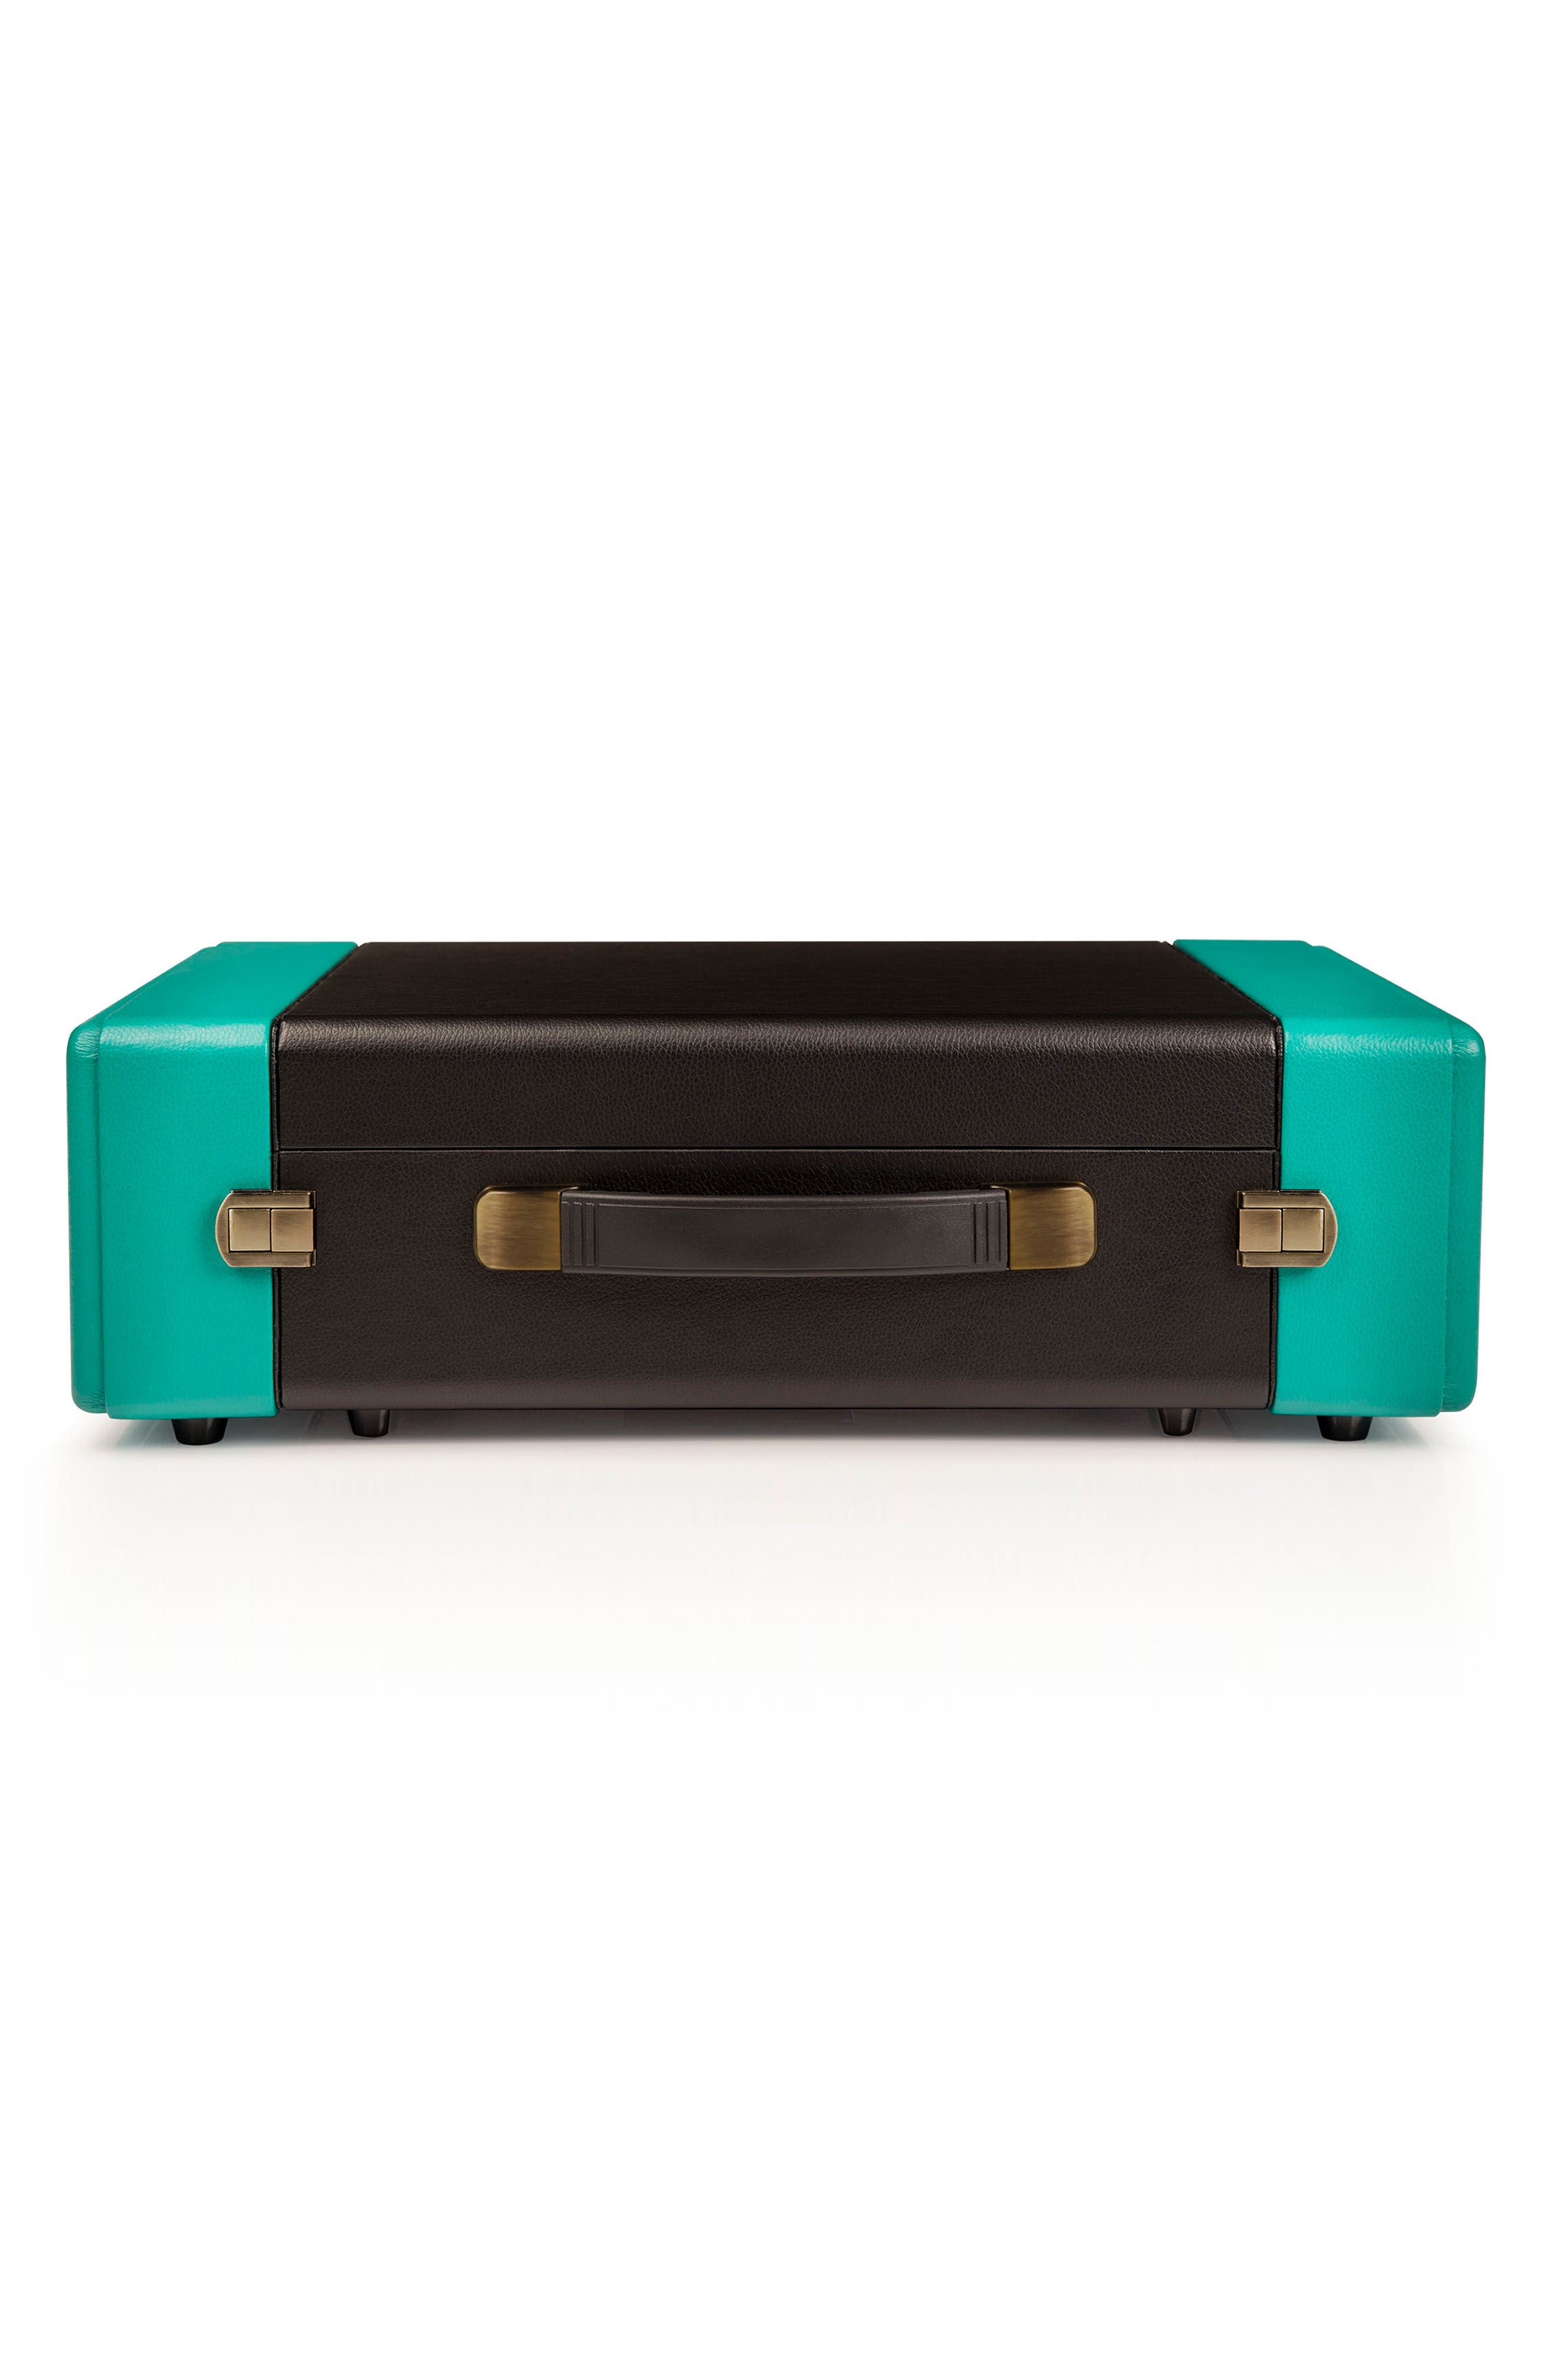 Snap Turntable,                             Alternate thumbnail 3, color,                             Turquoise